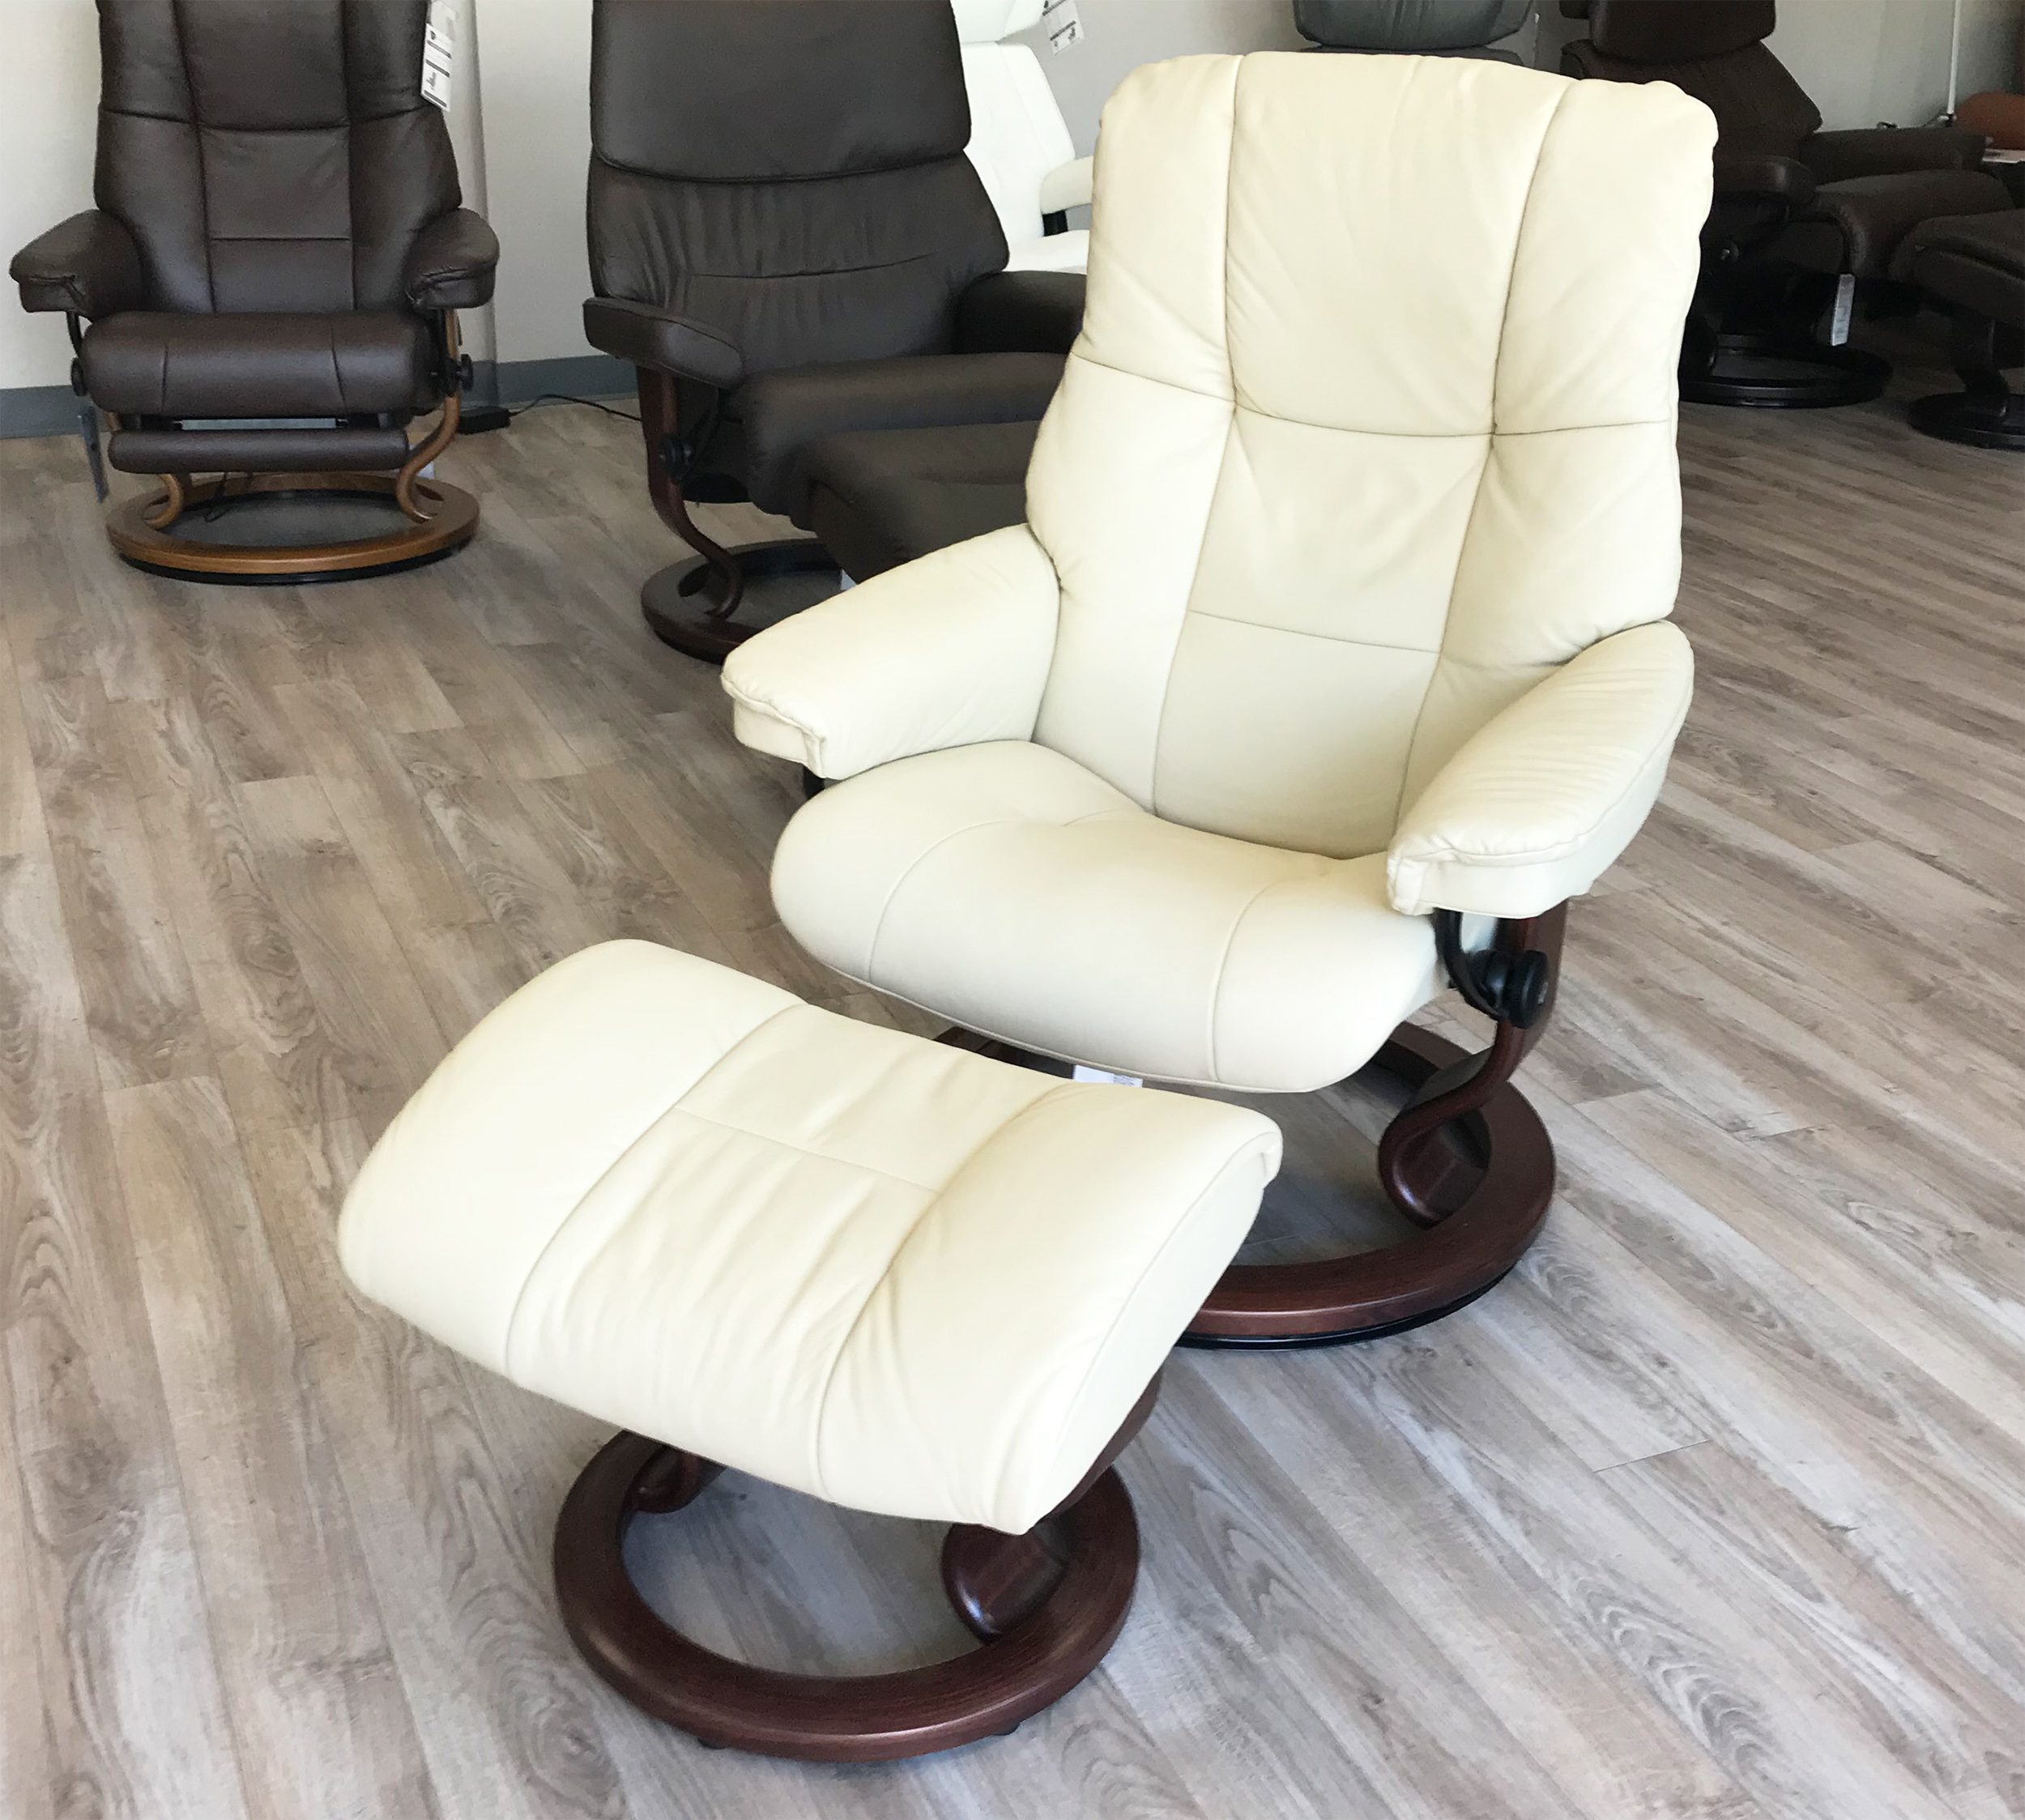 Small Chair With Ottoman: Stressless Chelsea Small Mayfair Paloma Kitt Leather